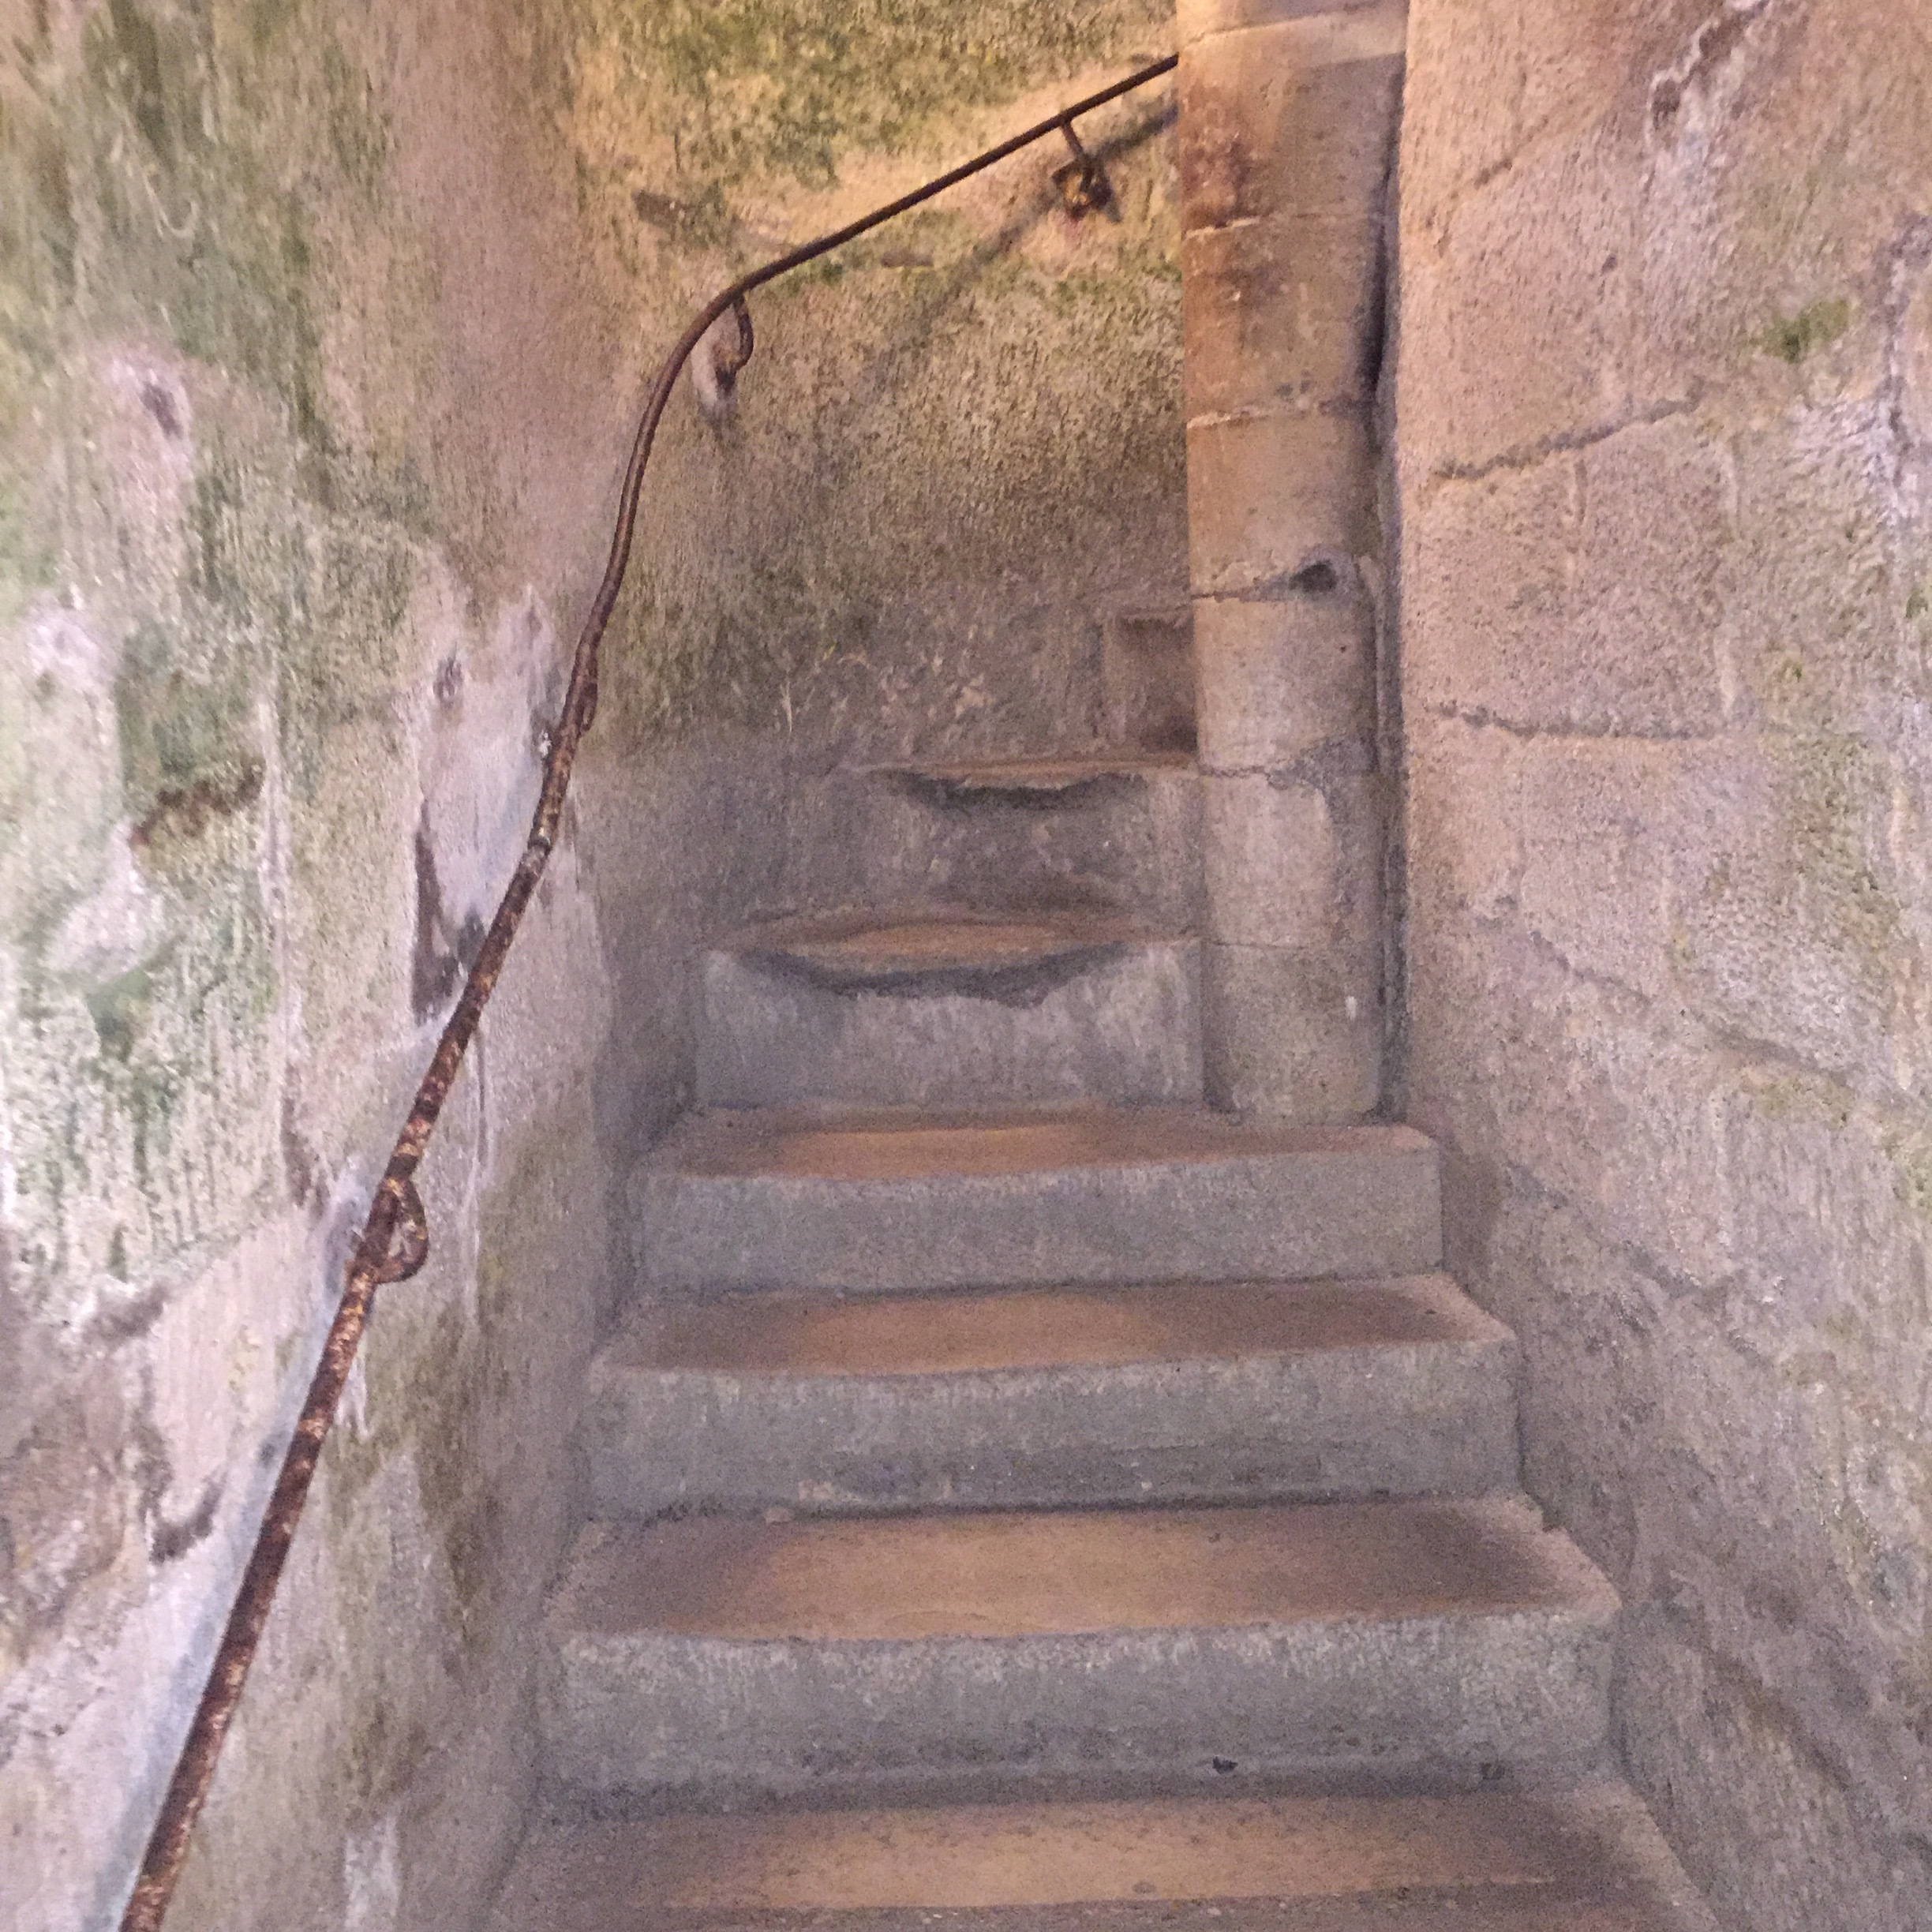 These stairs were narrow, spirally, and felt like they went on forever!